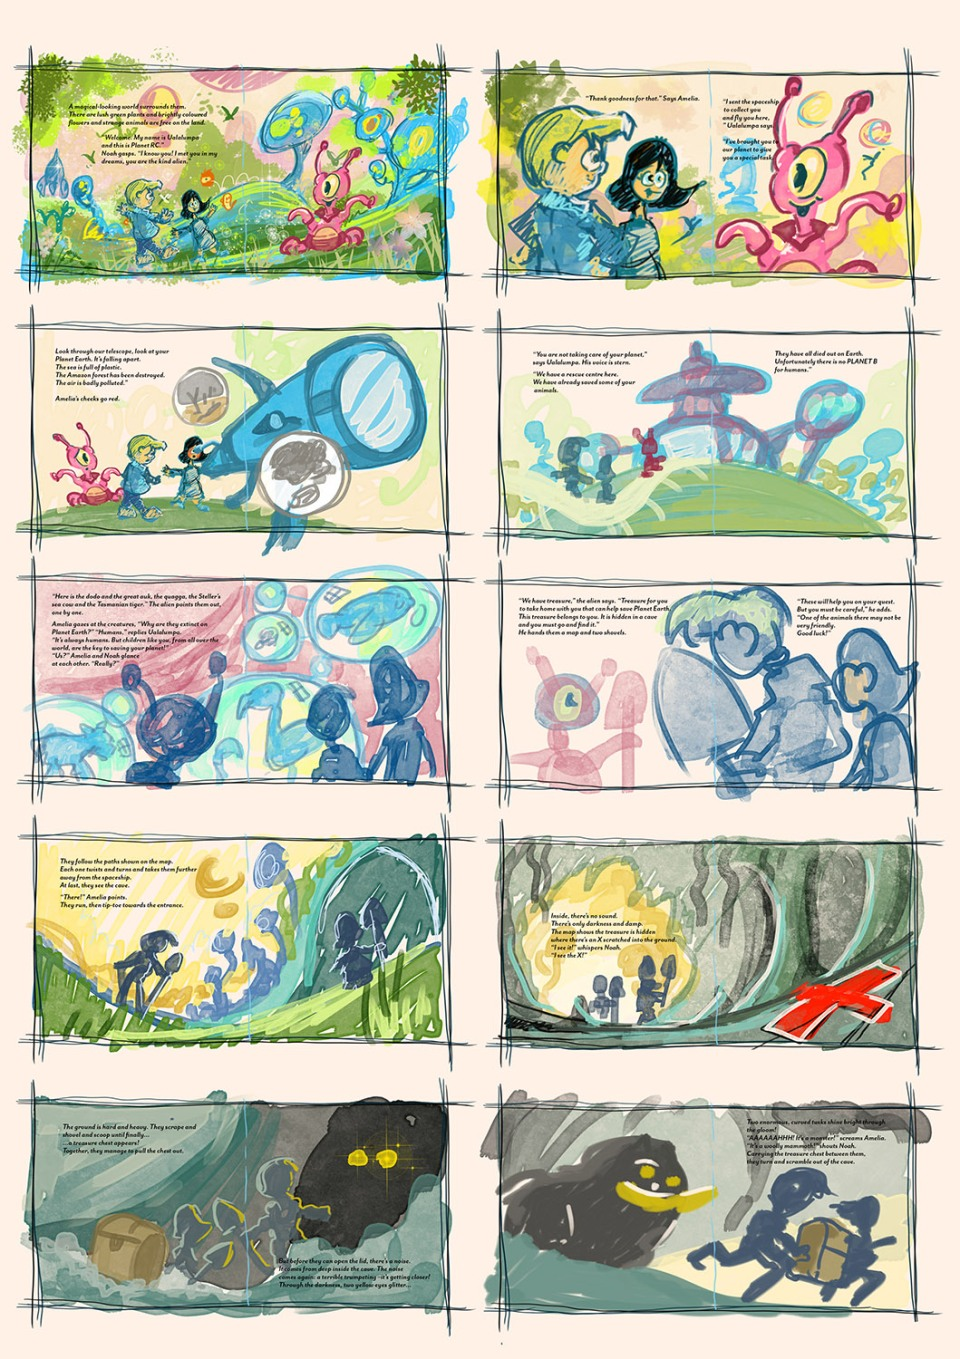 1500xThe Hidden Spaceship STORYBOARD 2 - Spreads 11-20 TEXT